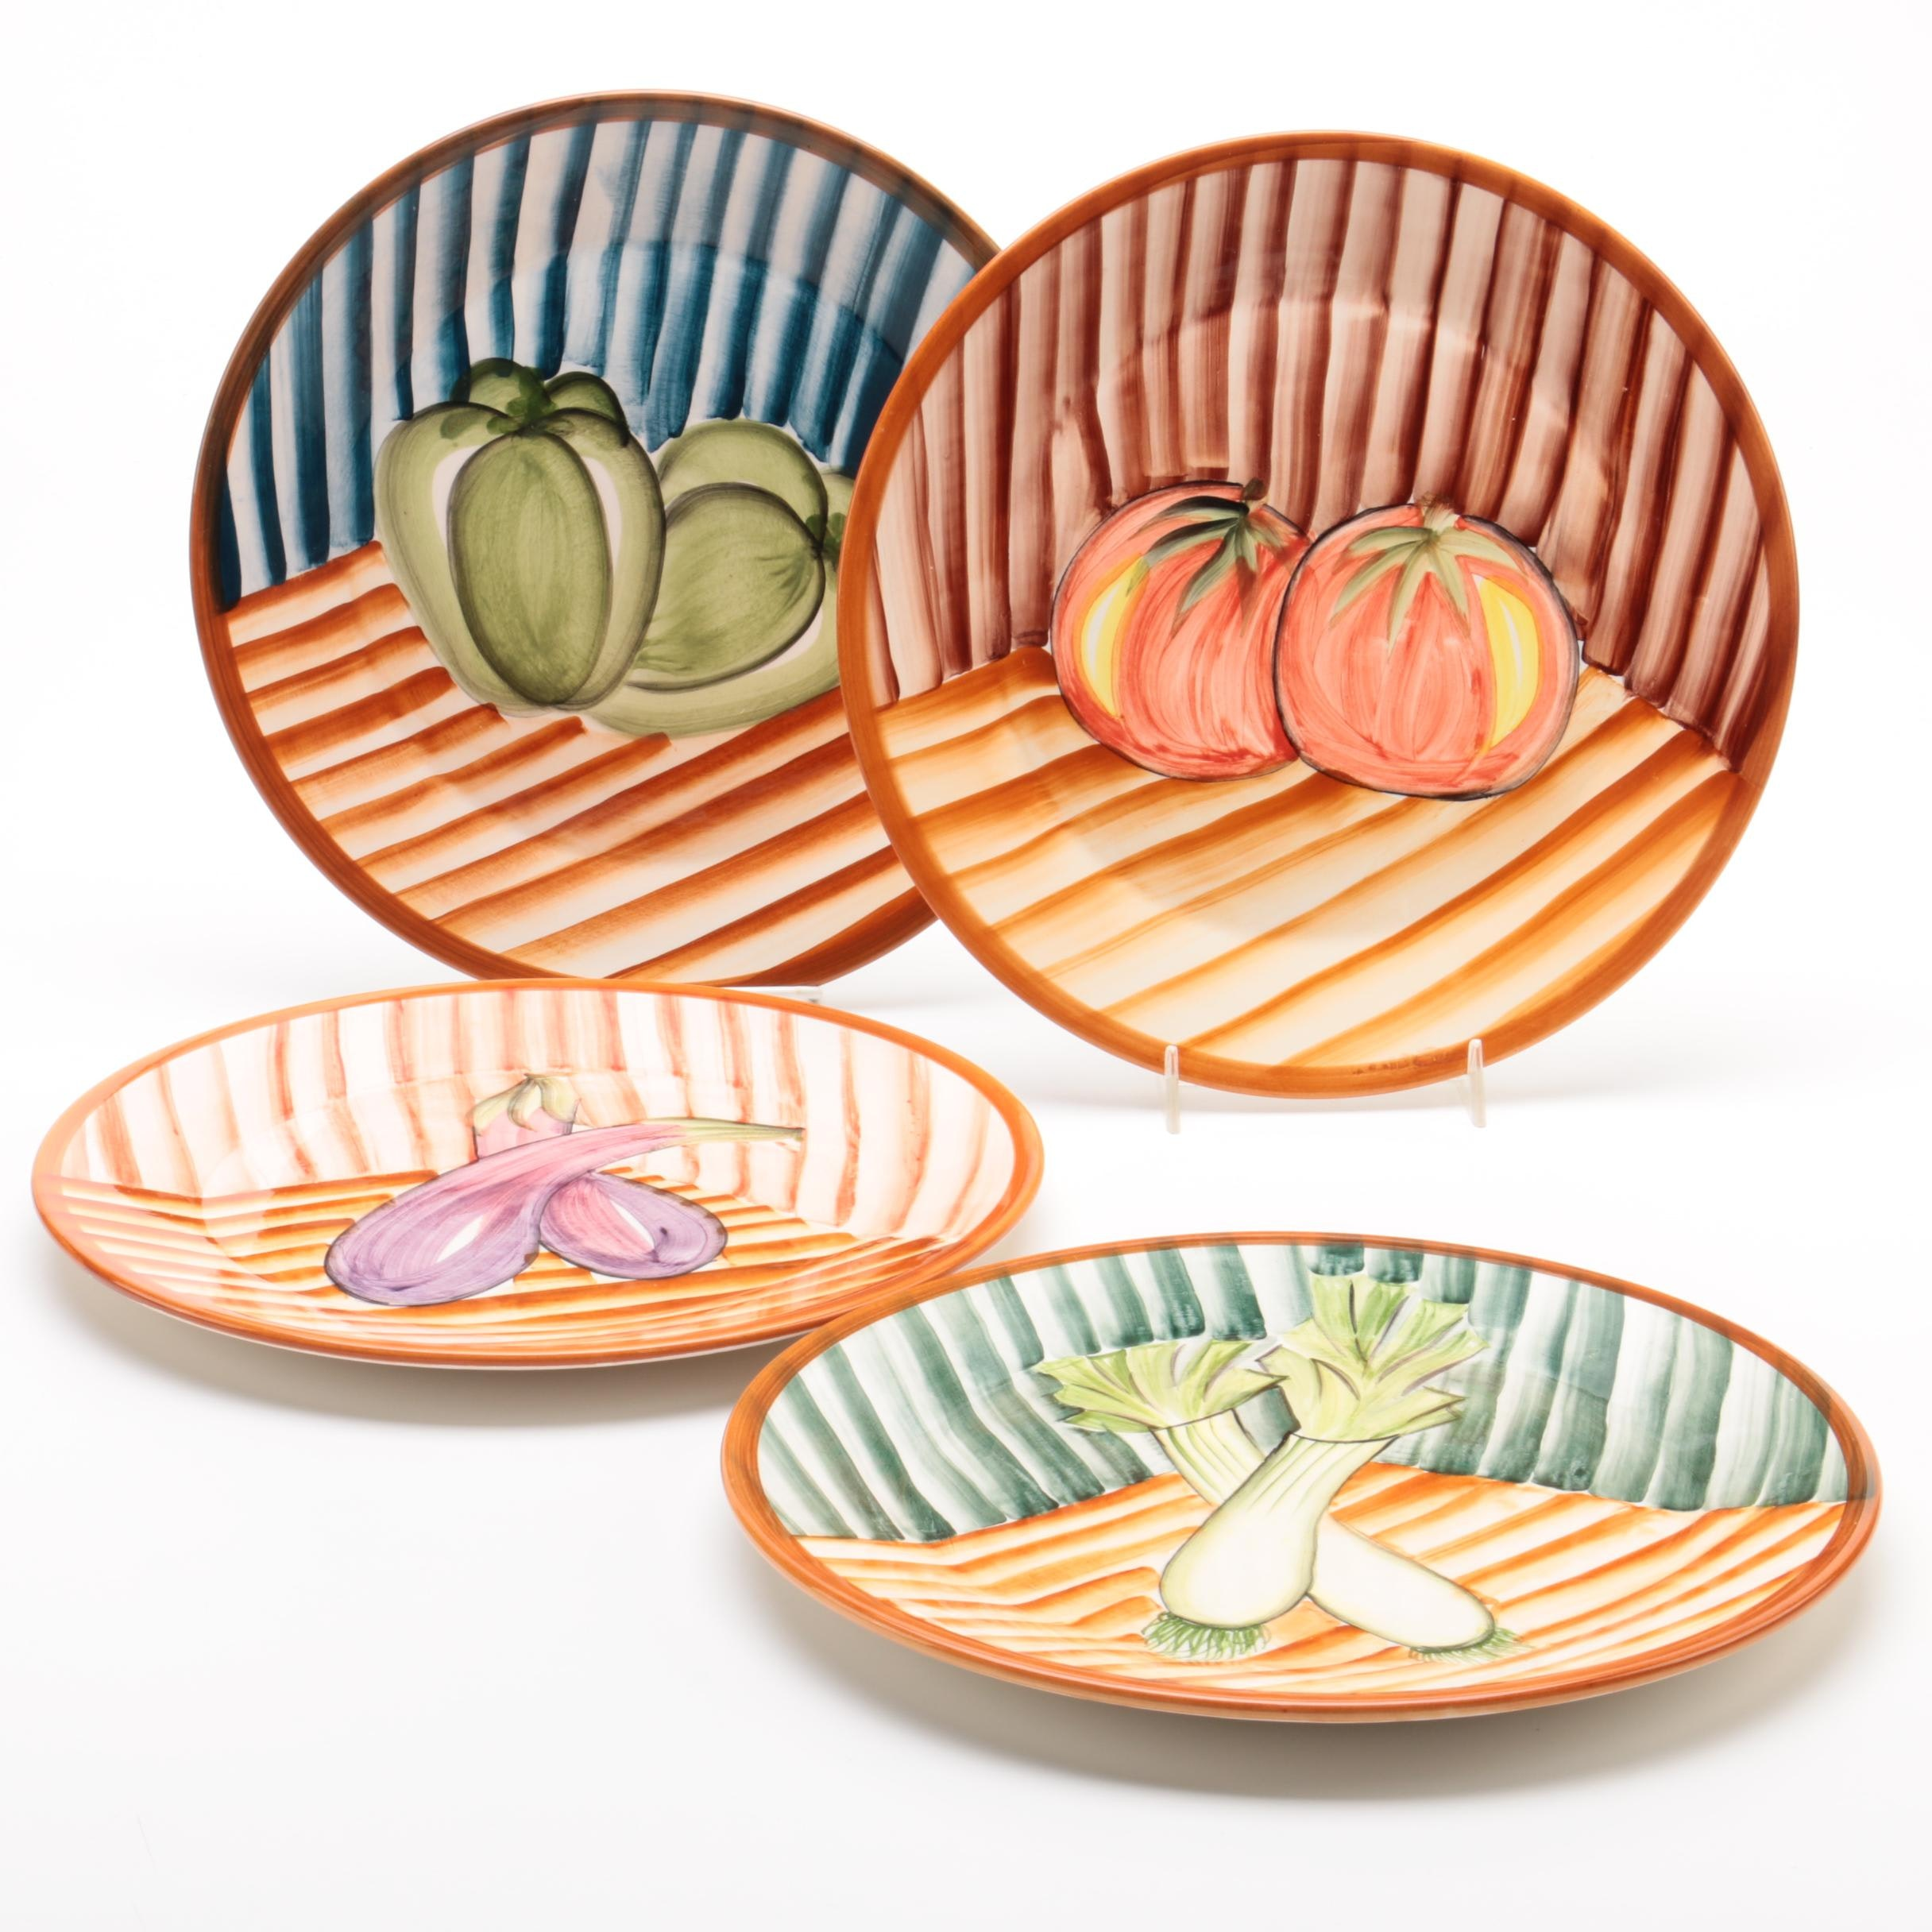 Hand Painted Portuguese Ceramic Plates with Vegetables ...  sc 1 st  EBTH.com & Hand Painted Portuguese Ceramic Plates with Vegetables